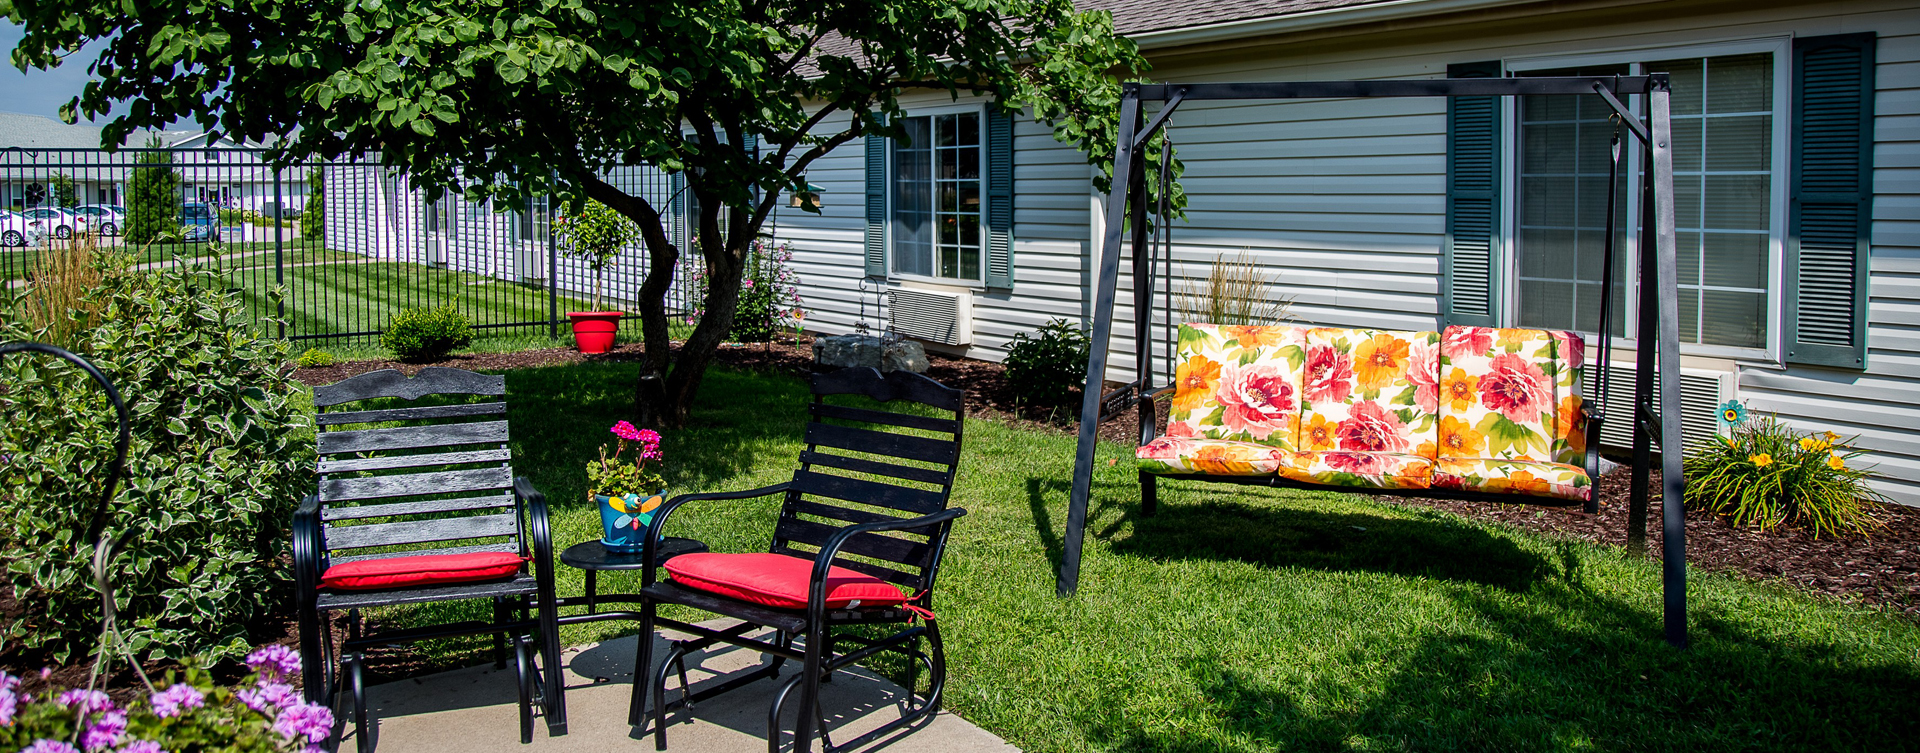 Residents with dementia can enjoy a traveling path, relaxed seating and raised garden beds in the courtyard at Bickford of Muscatine